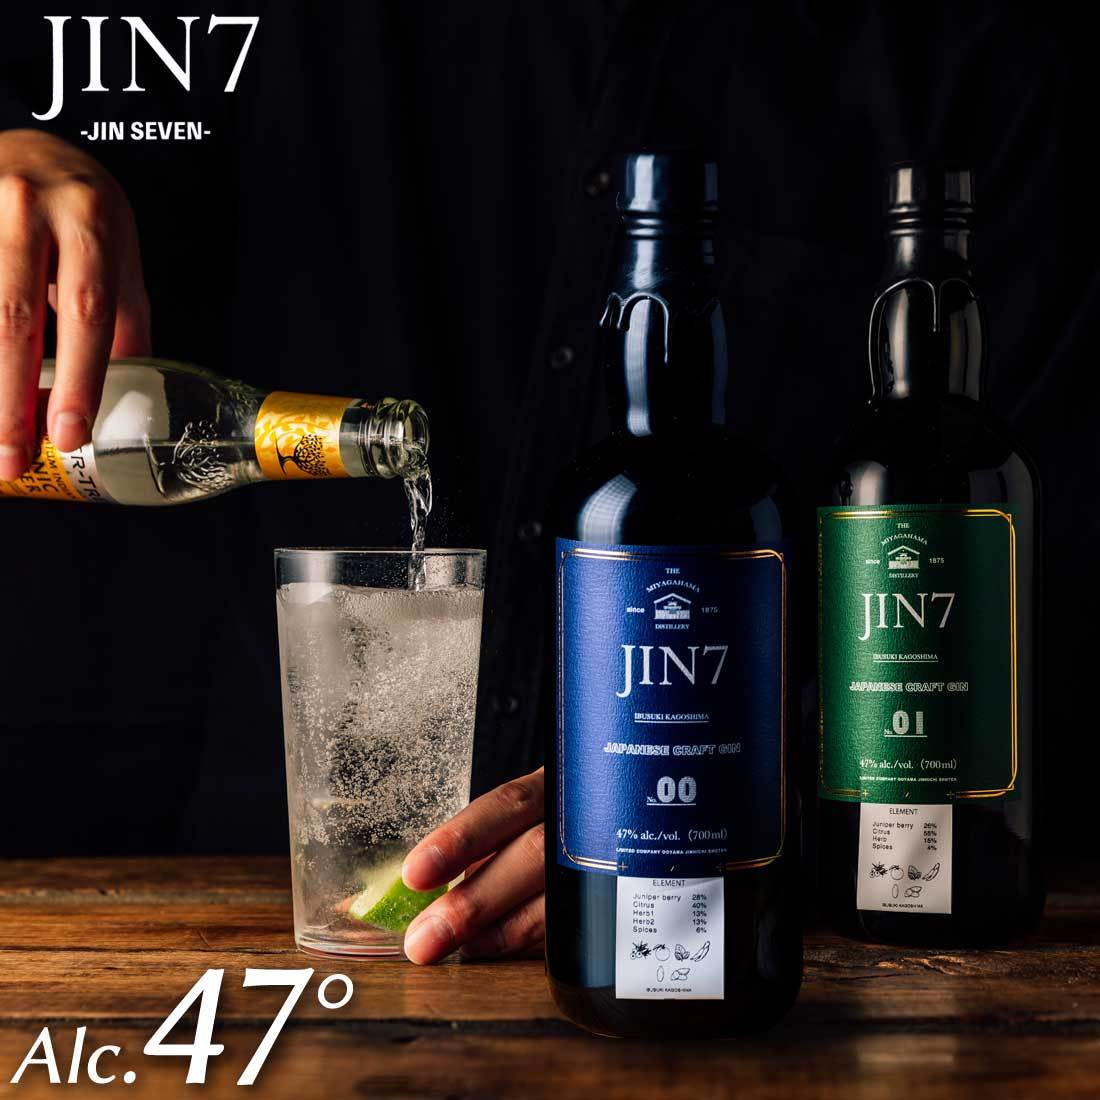 Jin7ジン